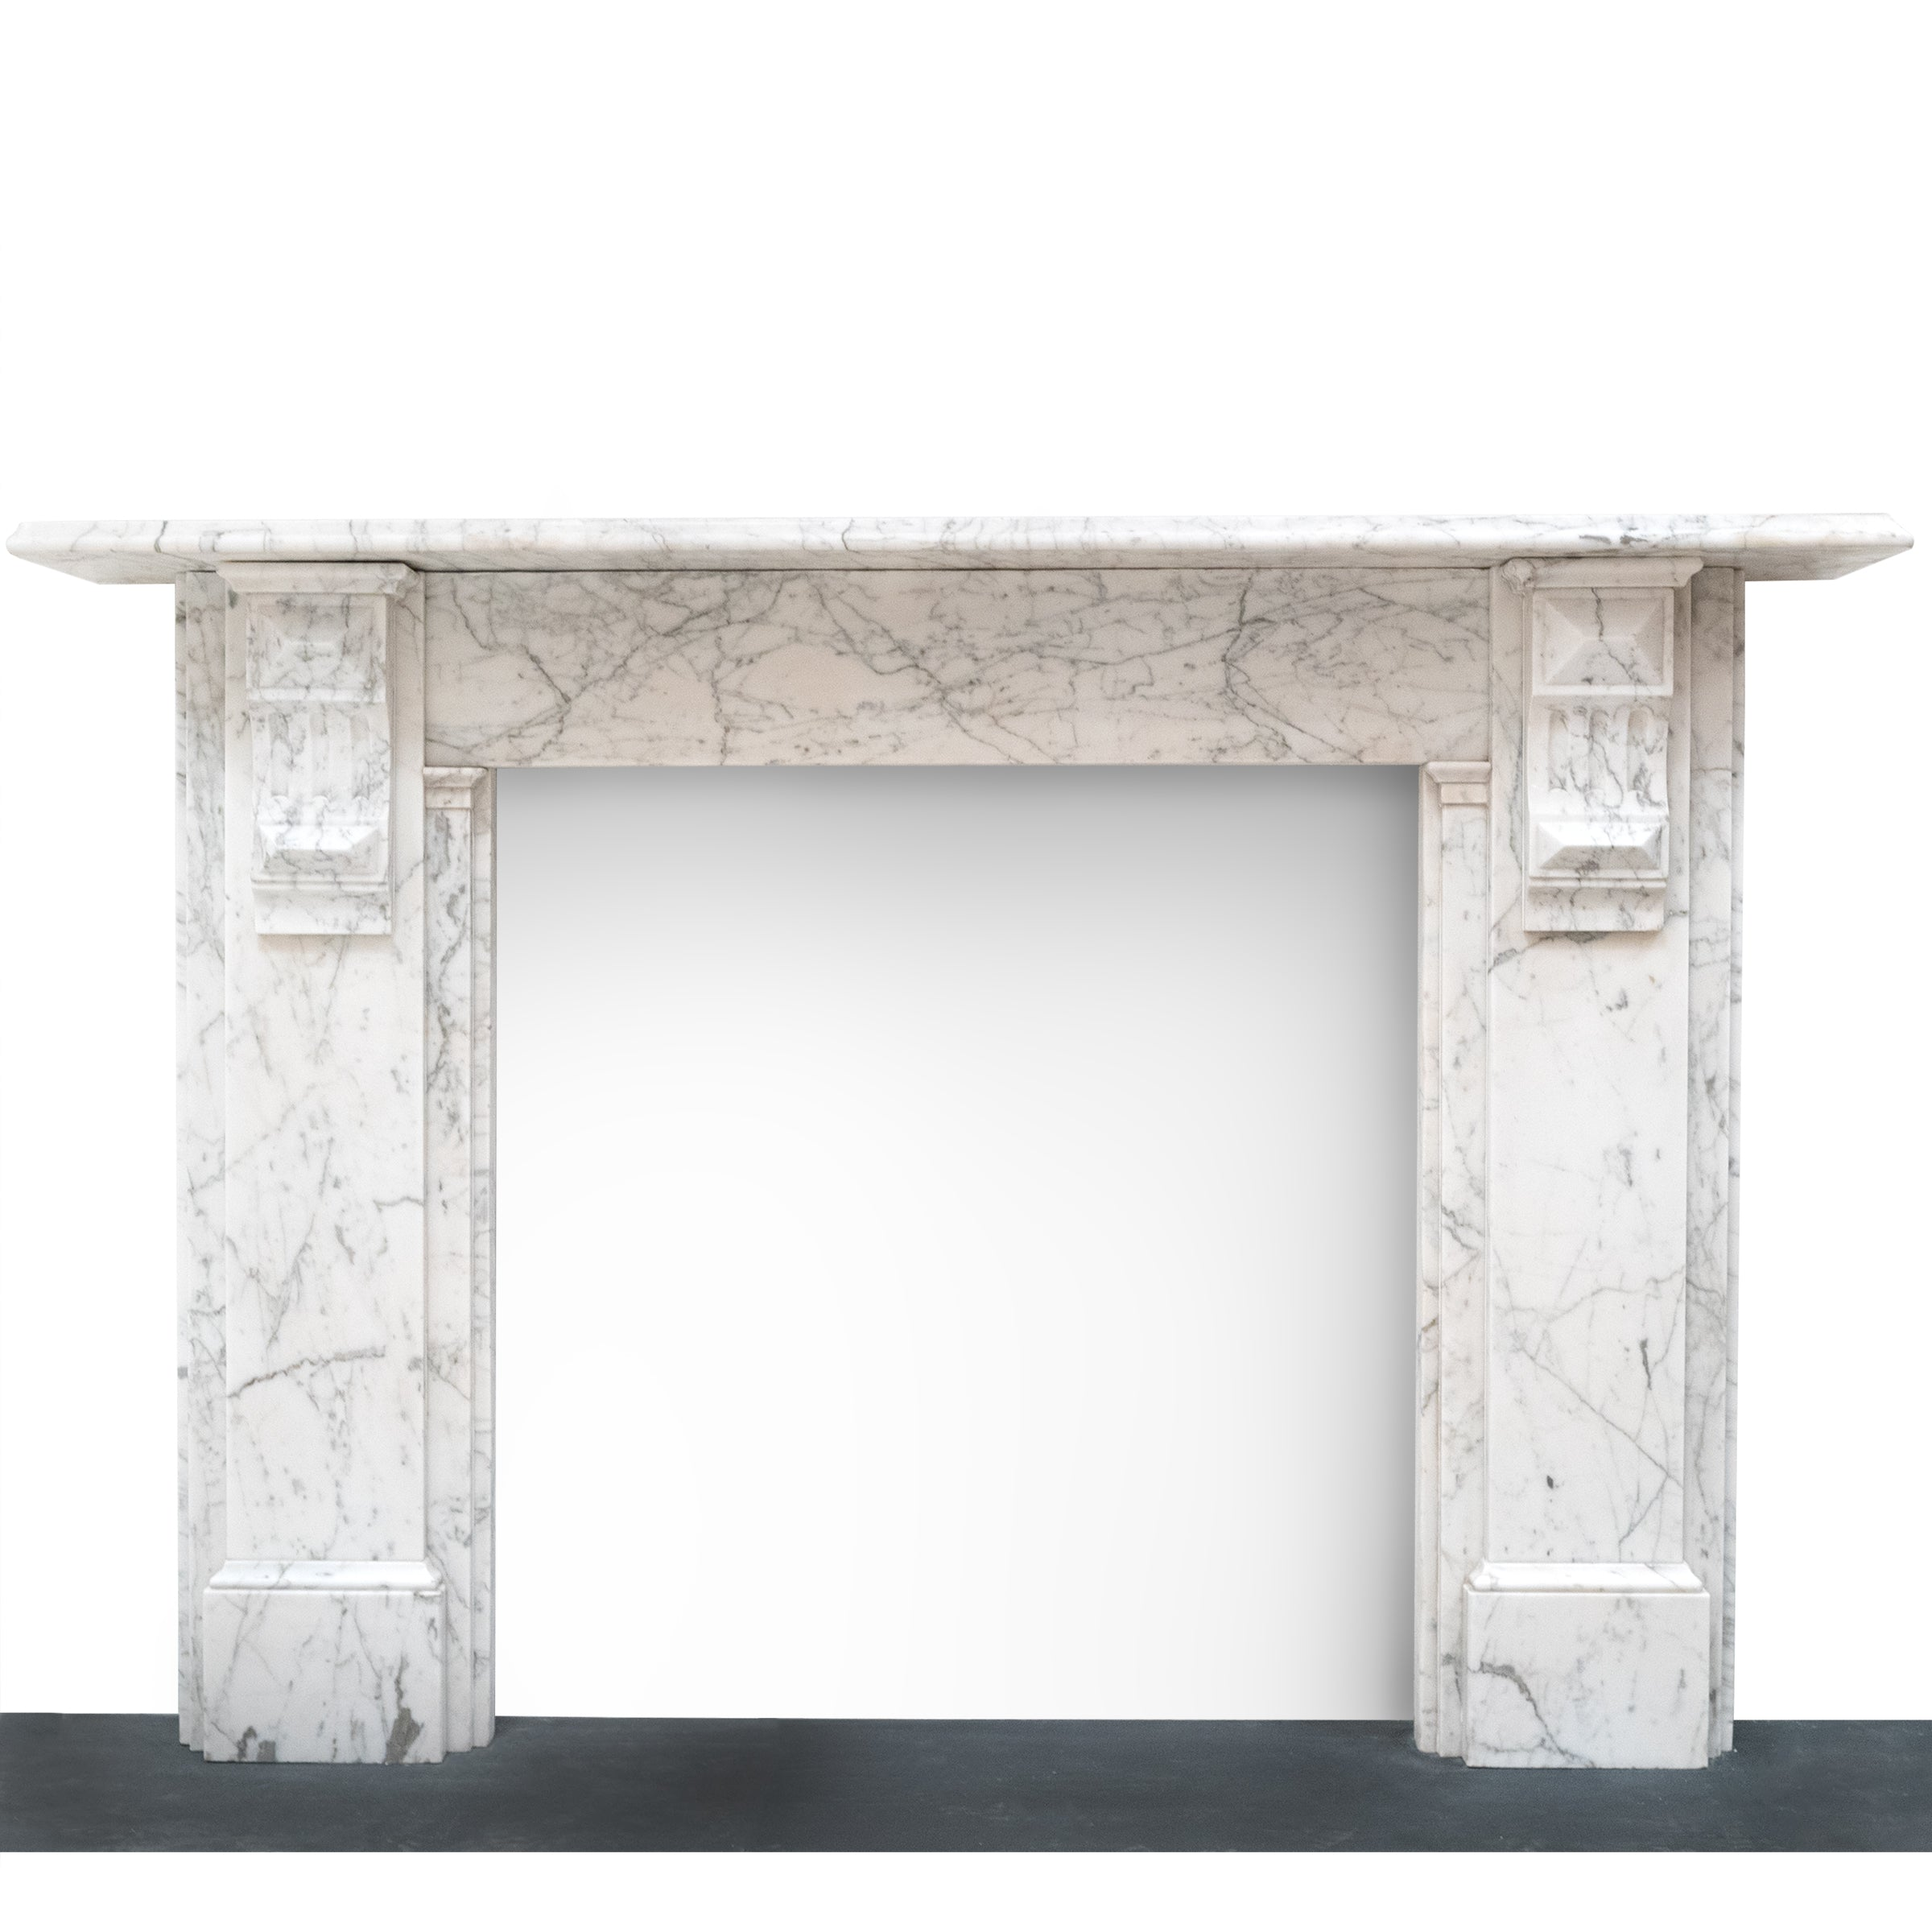 Antique Carrara Marble Fireplace Surround with Corbels (Pair Available)